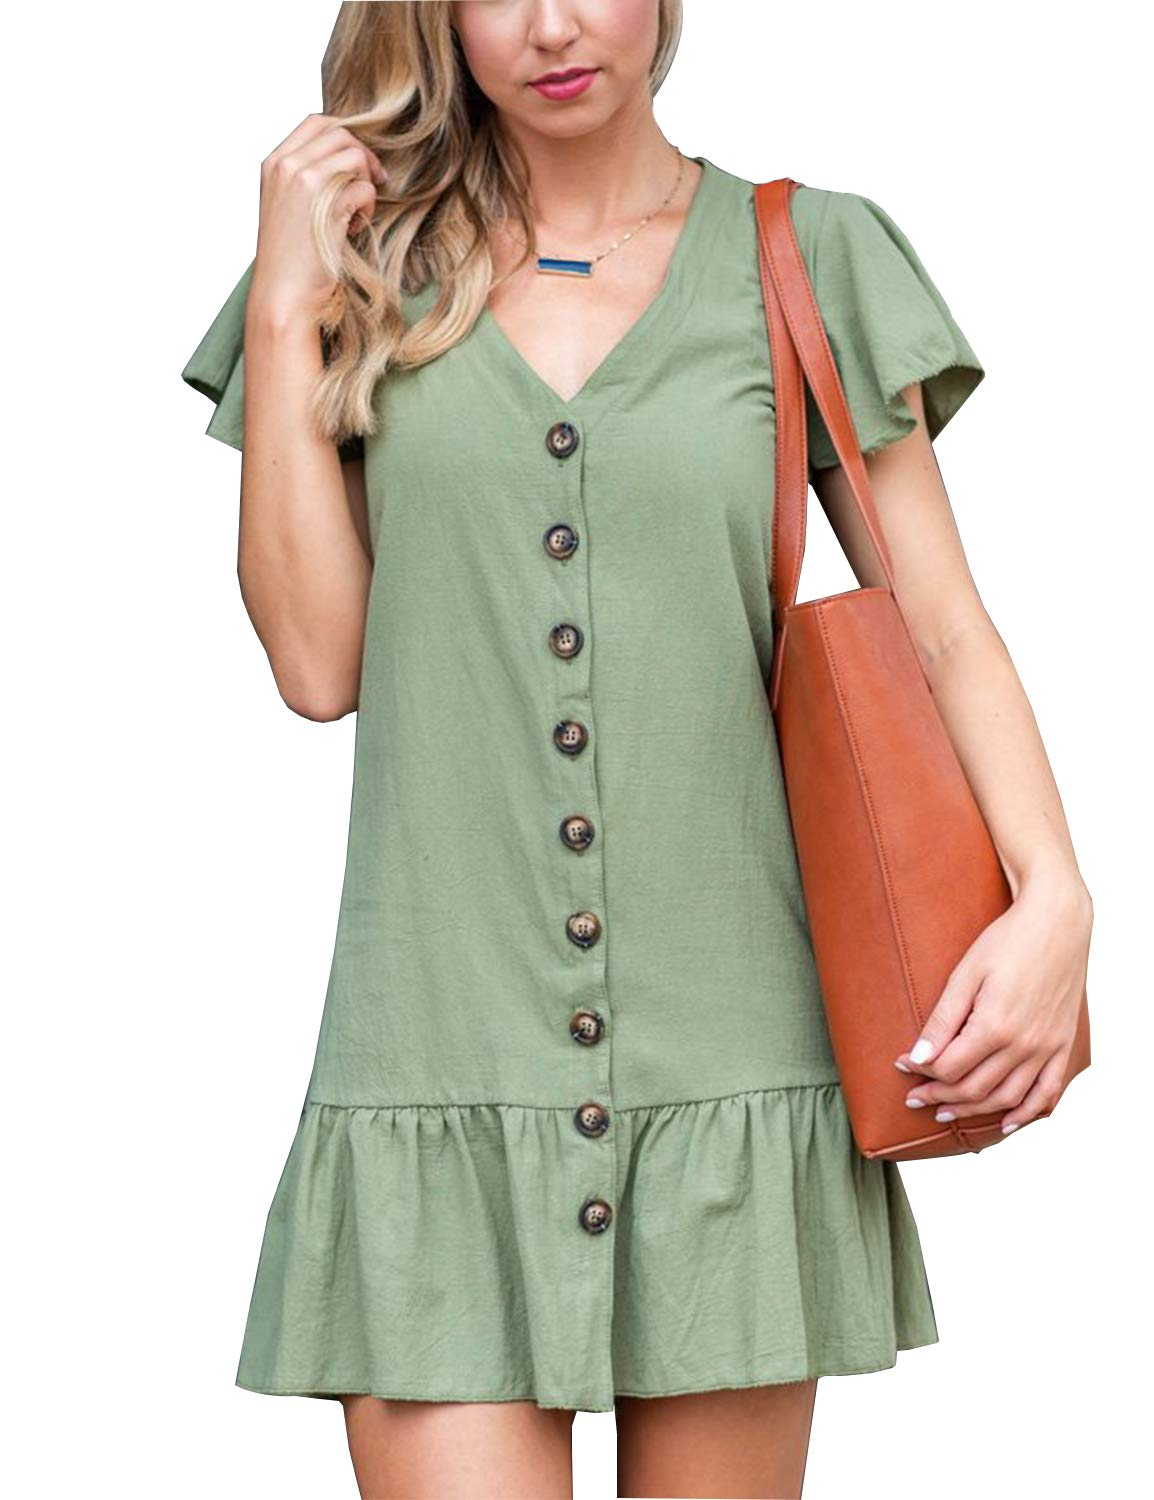 Blooming Jelly Women's V Neck Short Falbala Sleeve Button Down Mini Dress Green